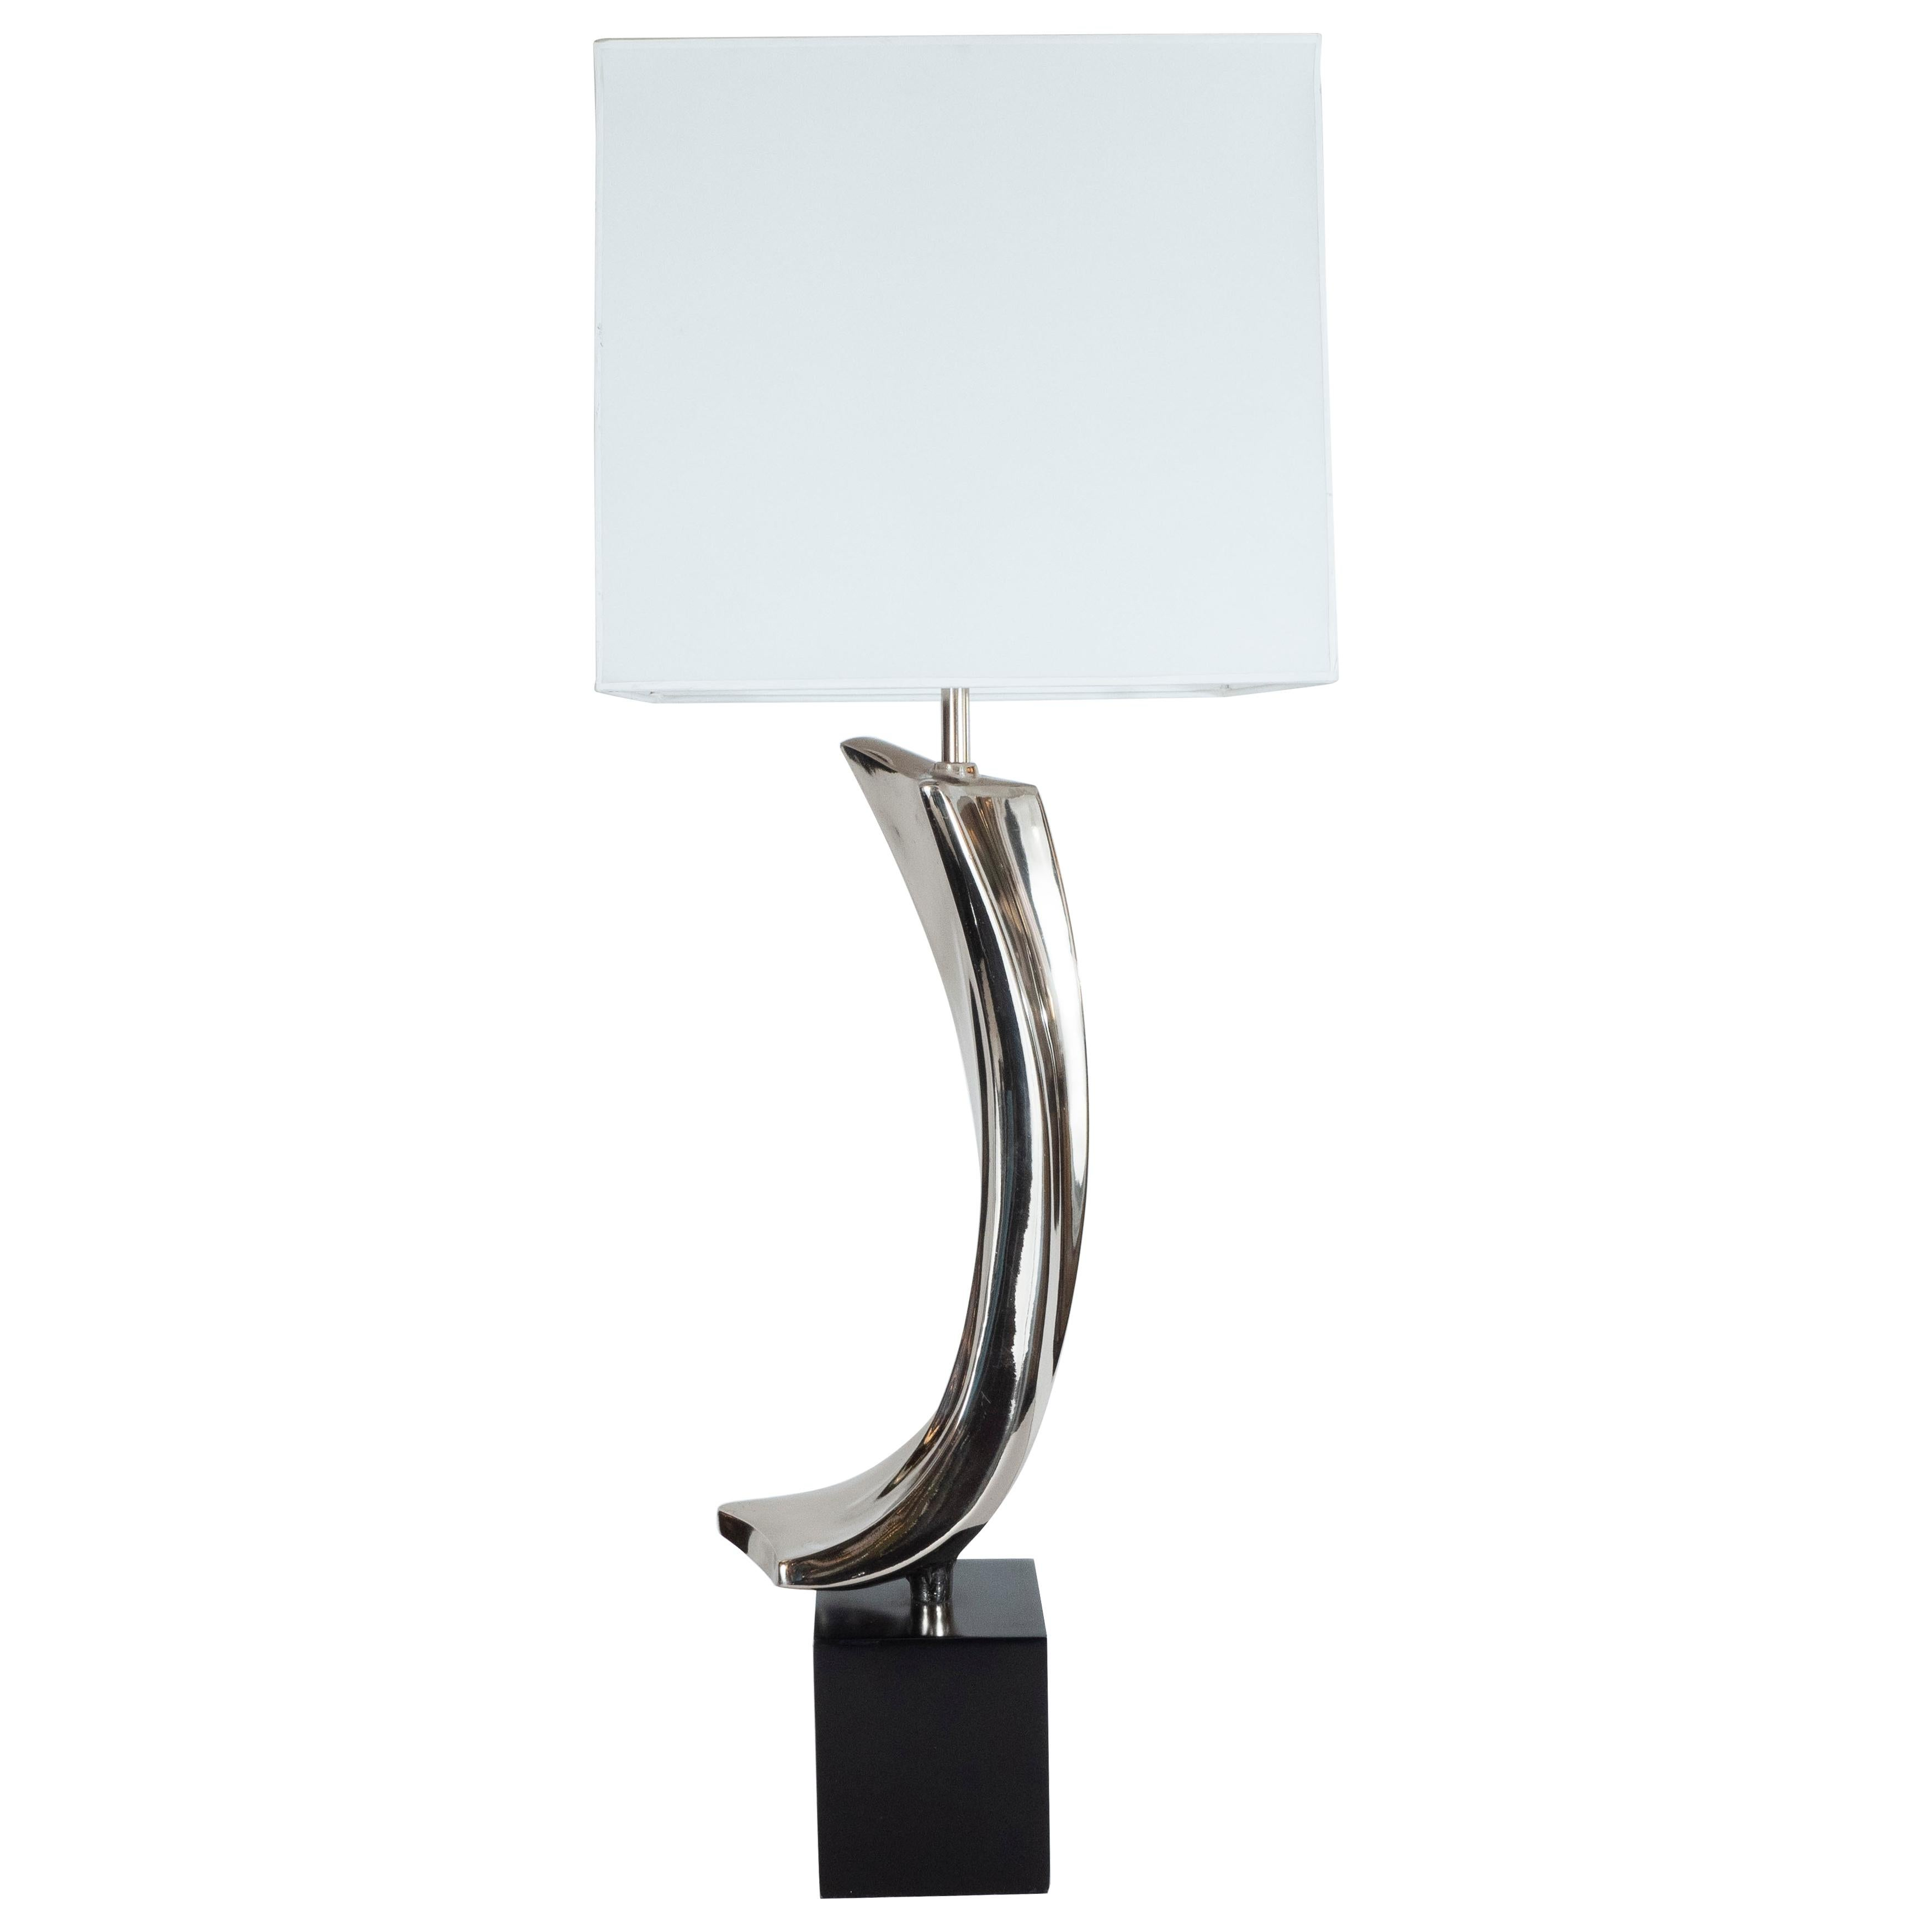 Midcentury Brutalist Table Lamp by Weiss & Barr for Laurel Lamp Co.